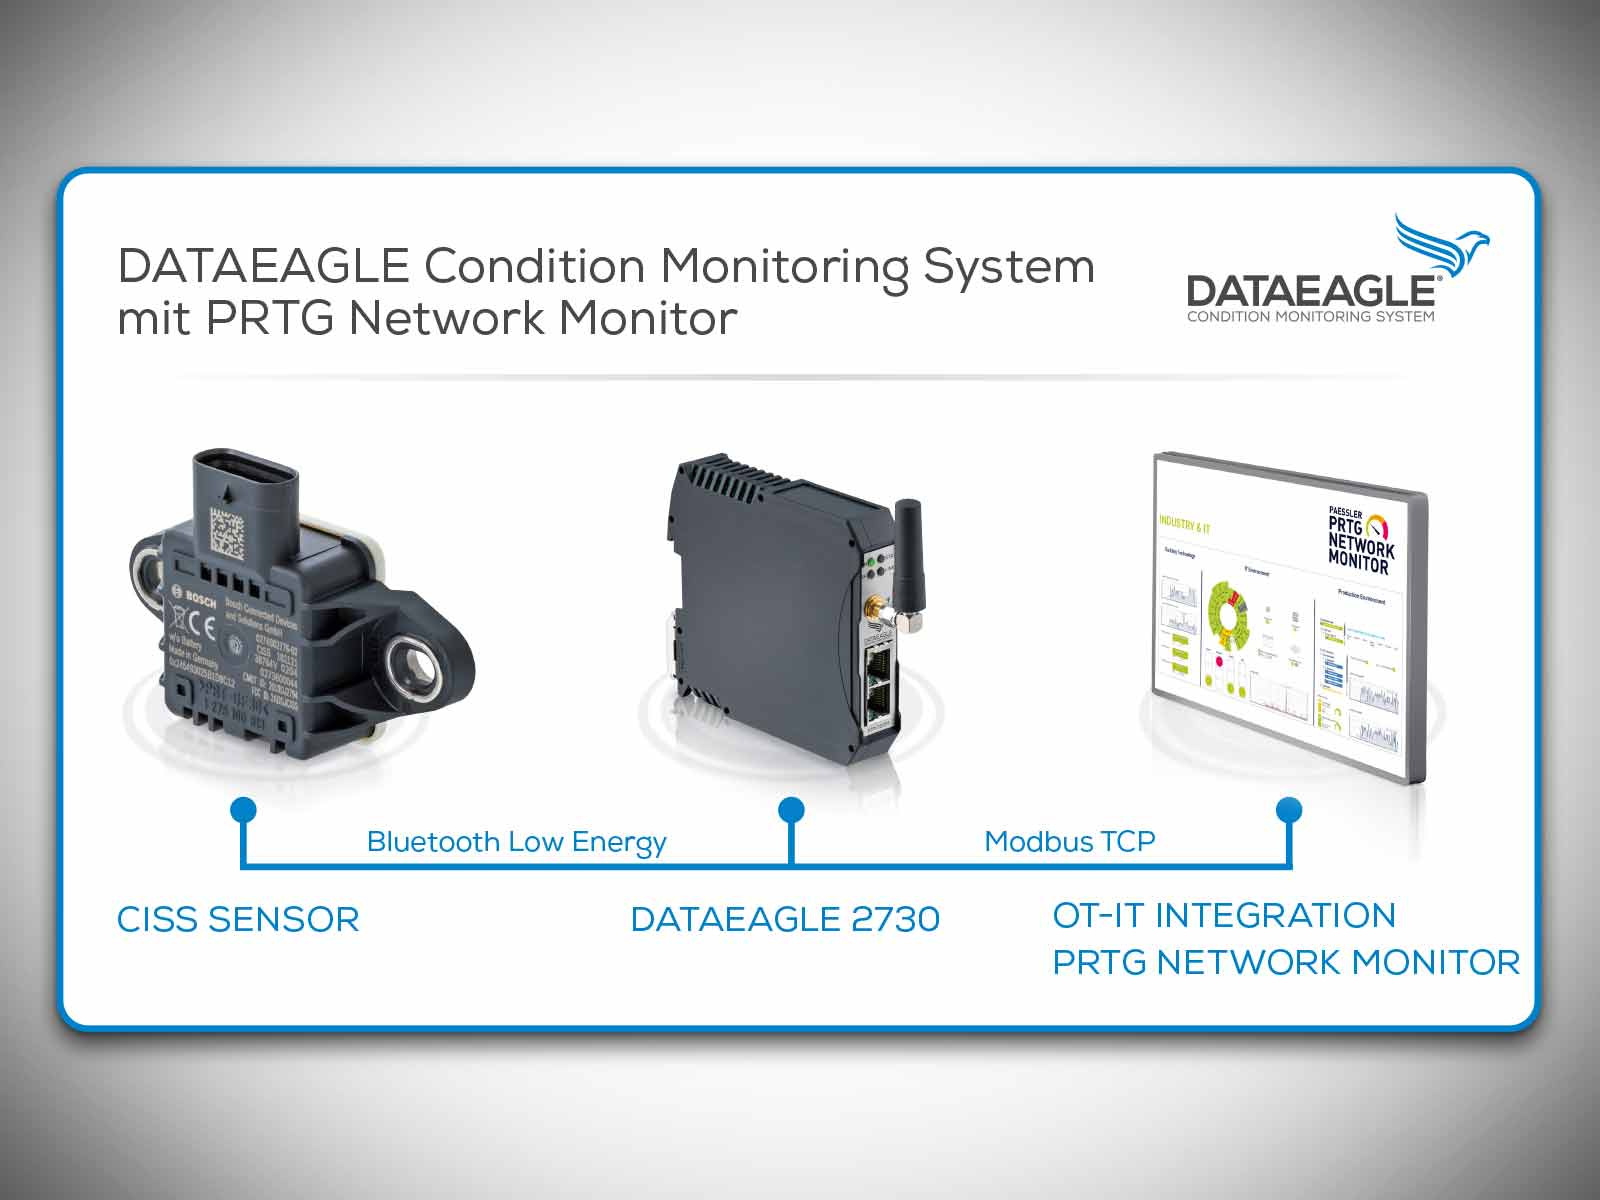 DATAEAGLE COndition Monitoring System PRTG Network Monitor